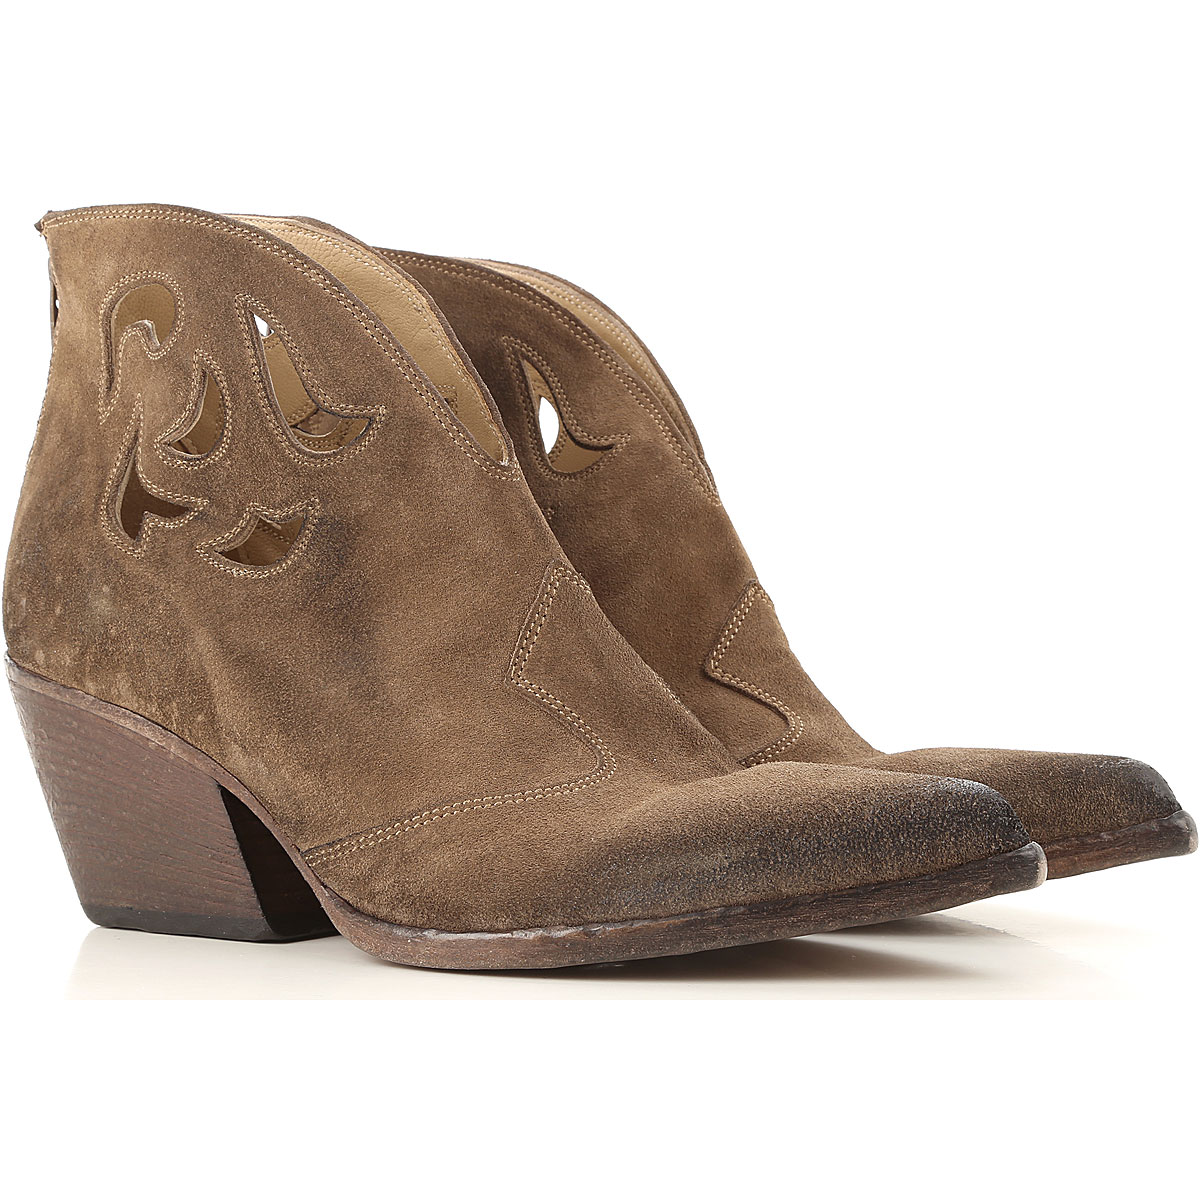 Elena Iachi Boots for Women, Booties On Sale, Dark Brown, Leather, 2019, 10 7 9